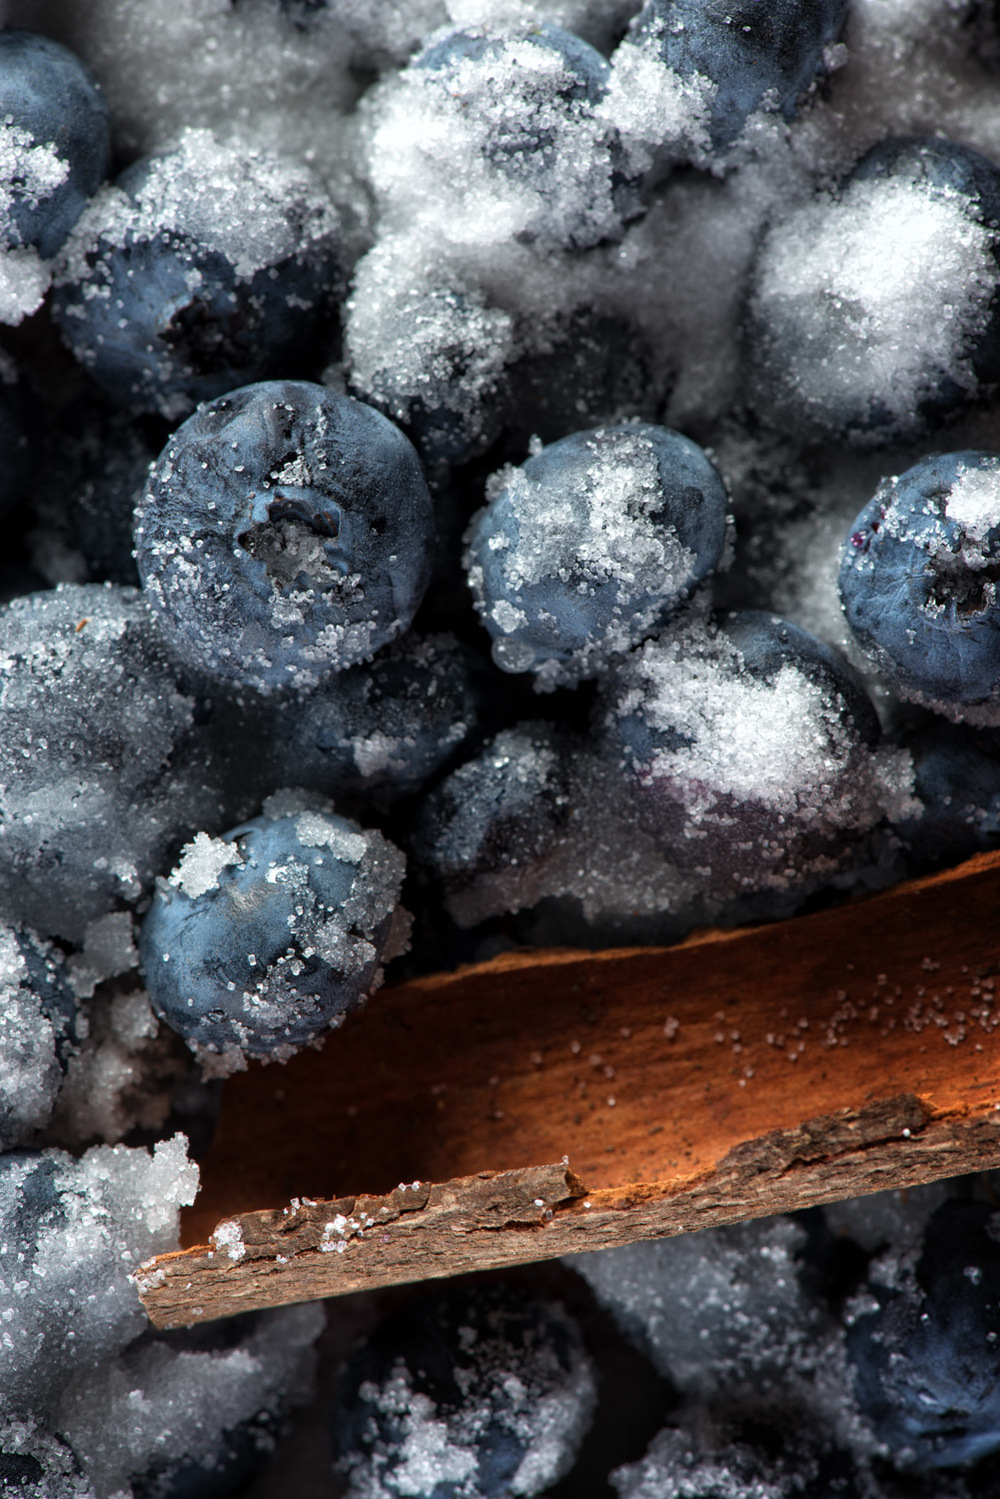 Blueberries-038-Edit.JPG